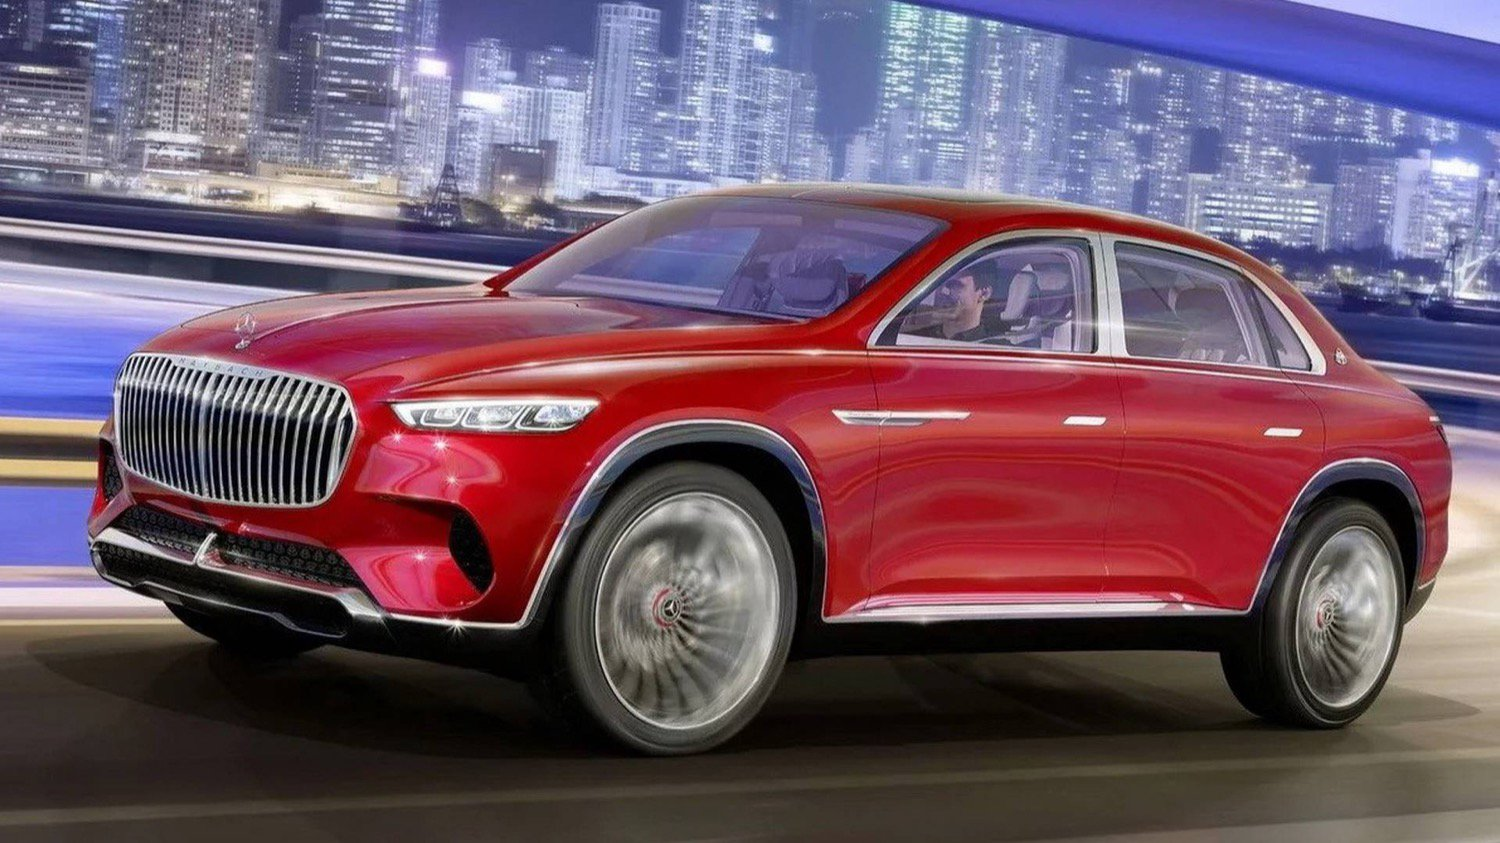 Mercedes introduced concept electric luxury Maybach